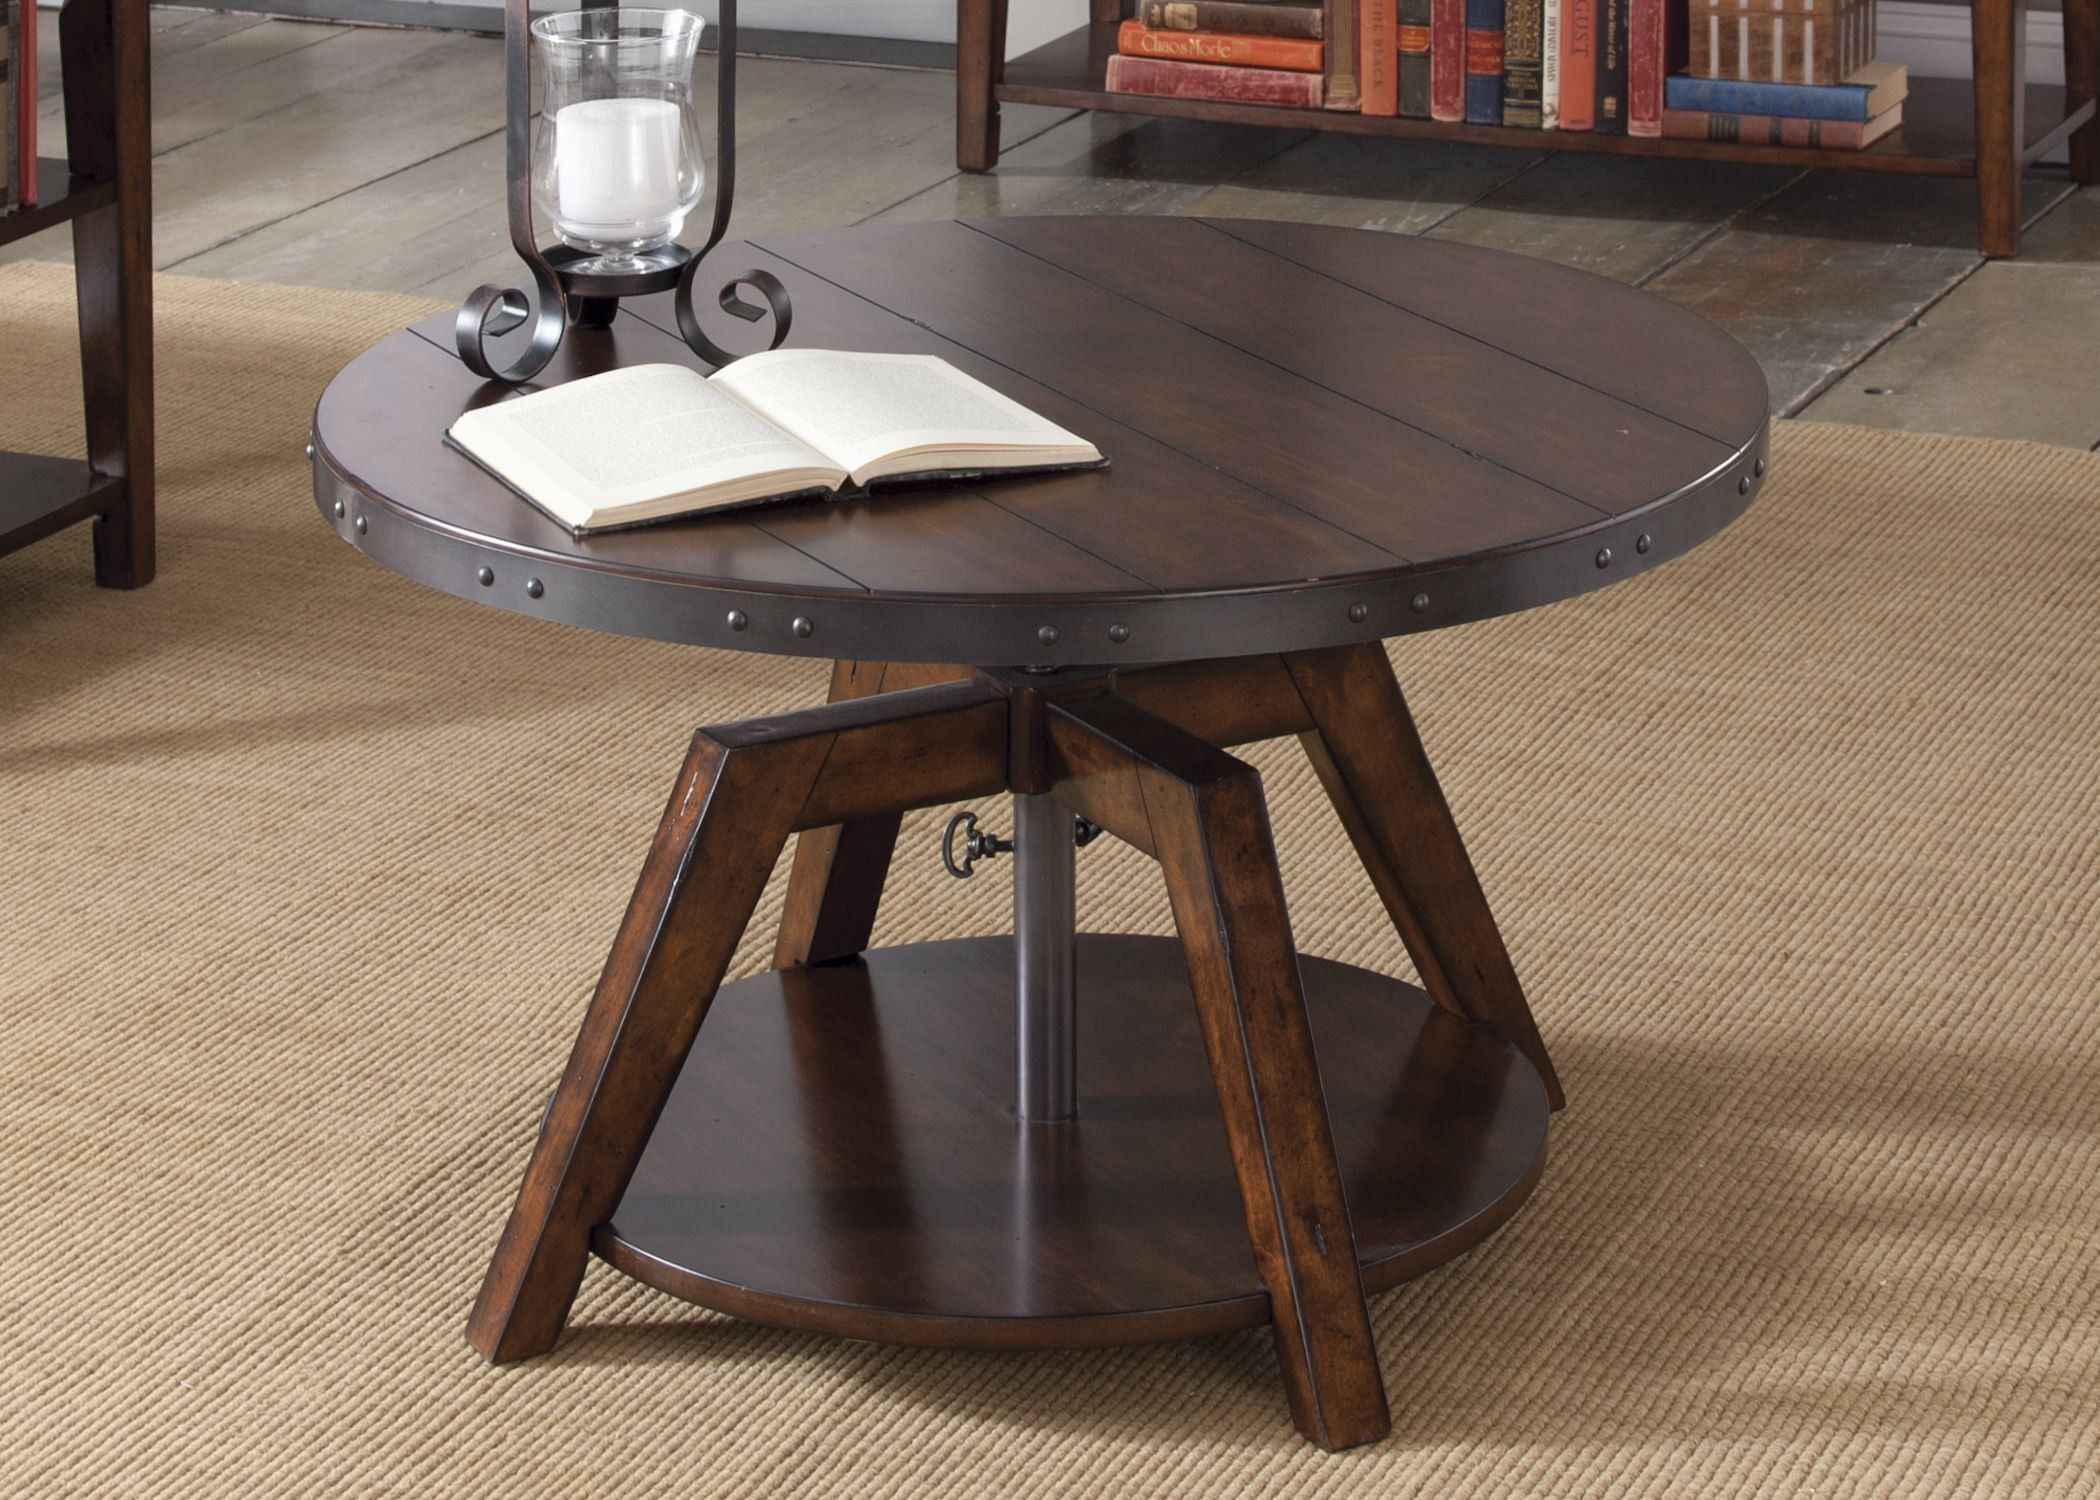 Aspen Skies Motion Cocktail Table 316 Ot1011 Liberty Furniture In 2021 Coffee Table To Dining Table Adjustable Height Coffee Table Brown Coffee Table [ 1500 x 2100 Pixel ]